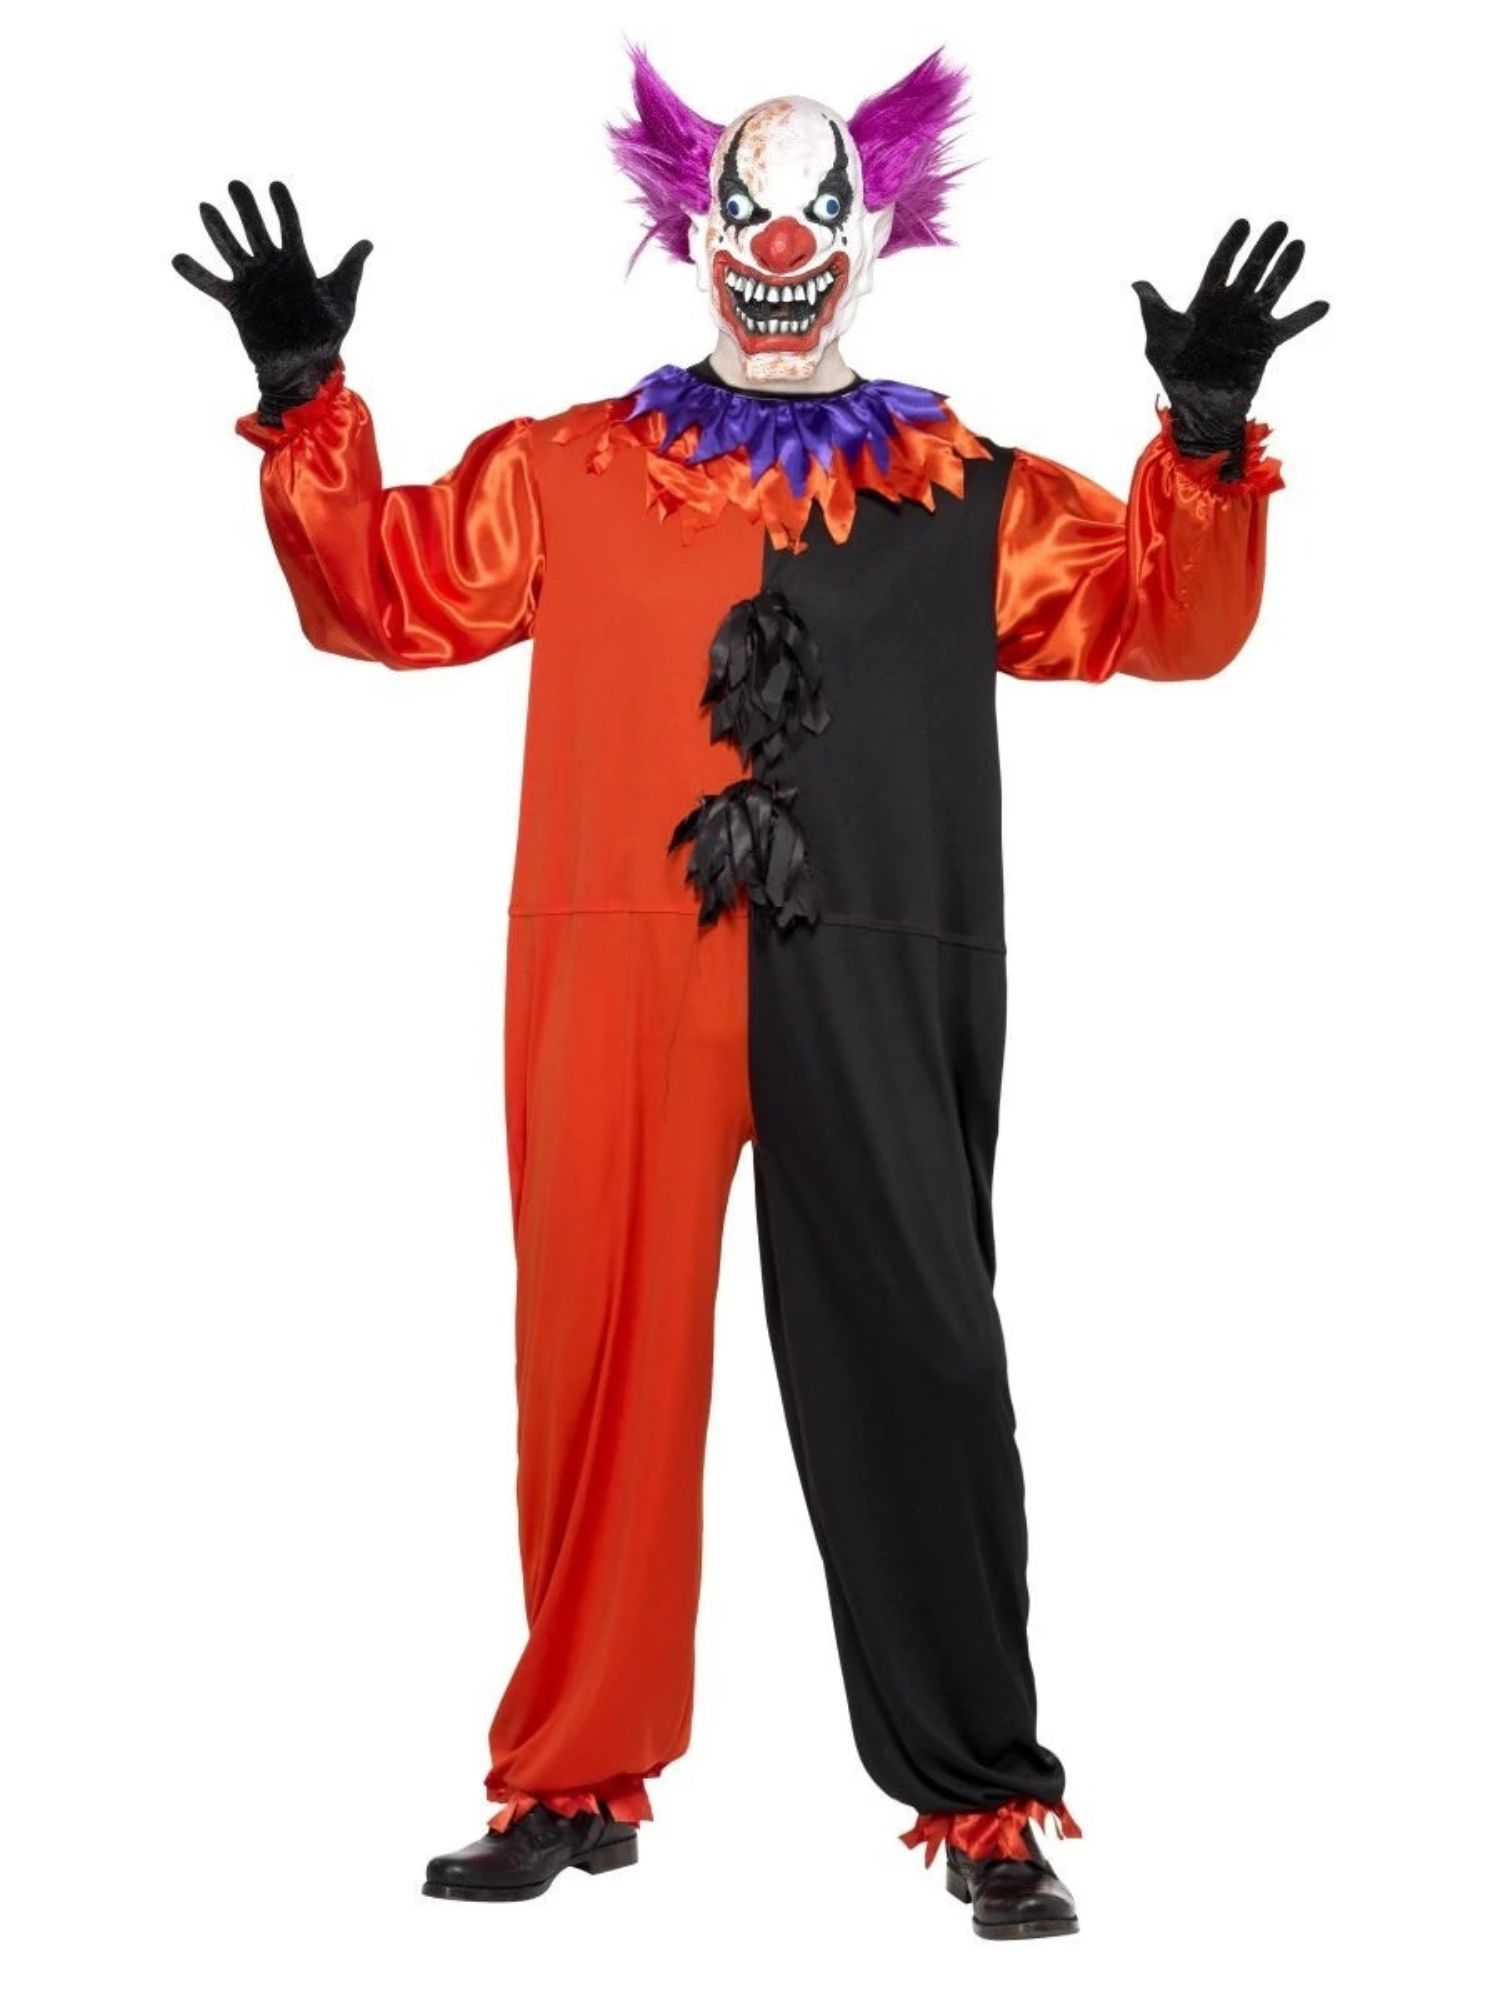 Scary Clown Mask Latex Halloween Mask Sinister/'s Love Costume Party Dress Up